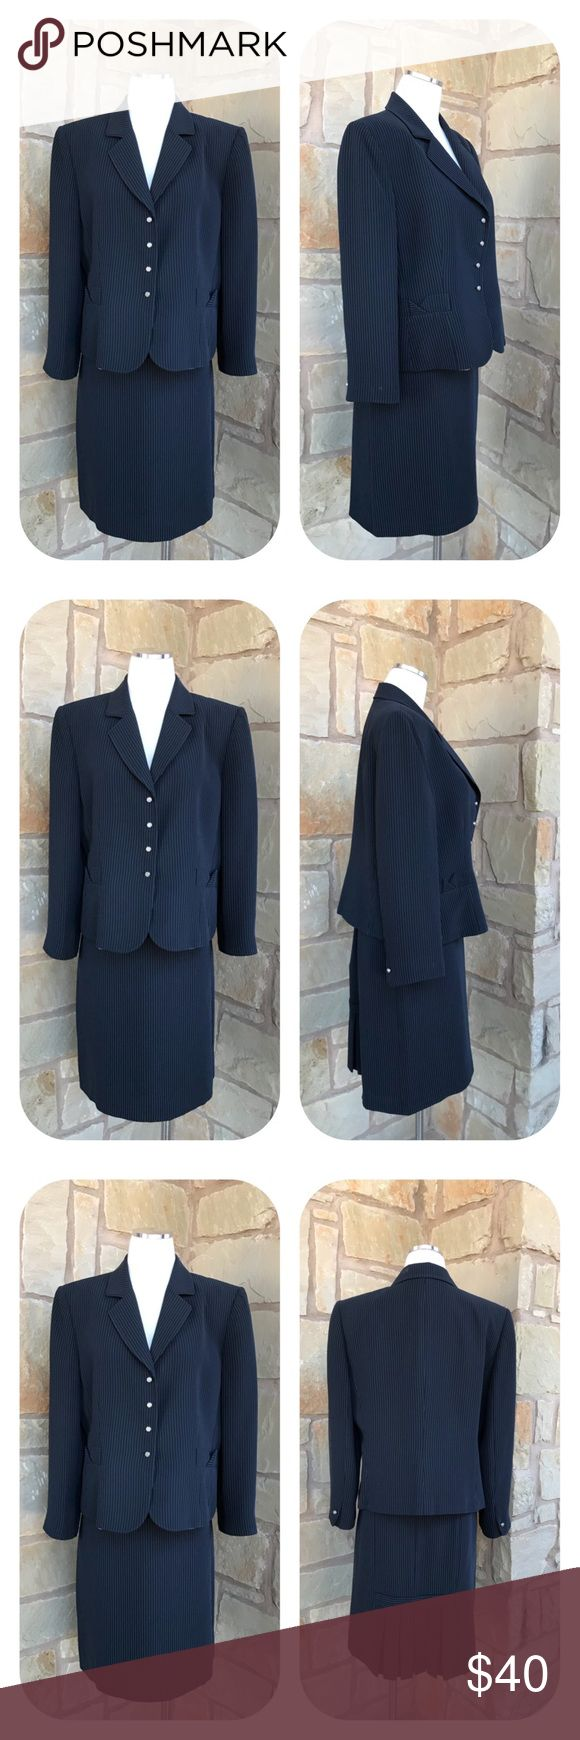 """Tahari ASL Pinstripe 2 Piece Skirt Suit Size 16 P Tahari ASL Pinstripe 2 Piece Skirt Suit  Size 16 Petite  -  Two Piece Suit -  Color: Black, Gray -  Fully Lined -  Blazer 98% Polyester 2% Rayon Three Button Closure Two Mock Pockets     Armpit to armpit 22.5""""     Armpit to end of sleeve 14.5""""     Shoulder to hem 23"""" -  Skirt 98% Polyester 2% Rayon Back Zipper      Waist 17.5""""      Length 21""""  Thanks for visiting! 💕 Tahari Skirts Skirt Sets"""